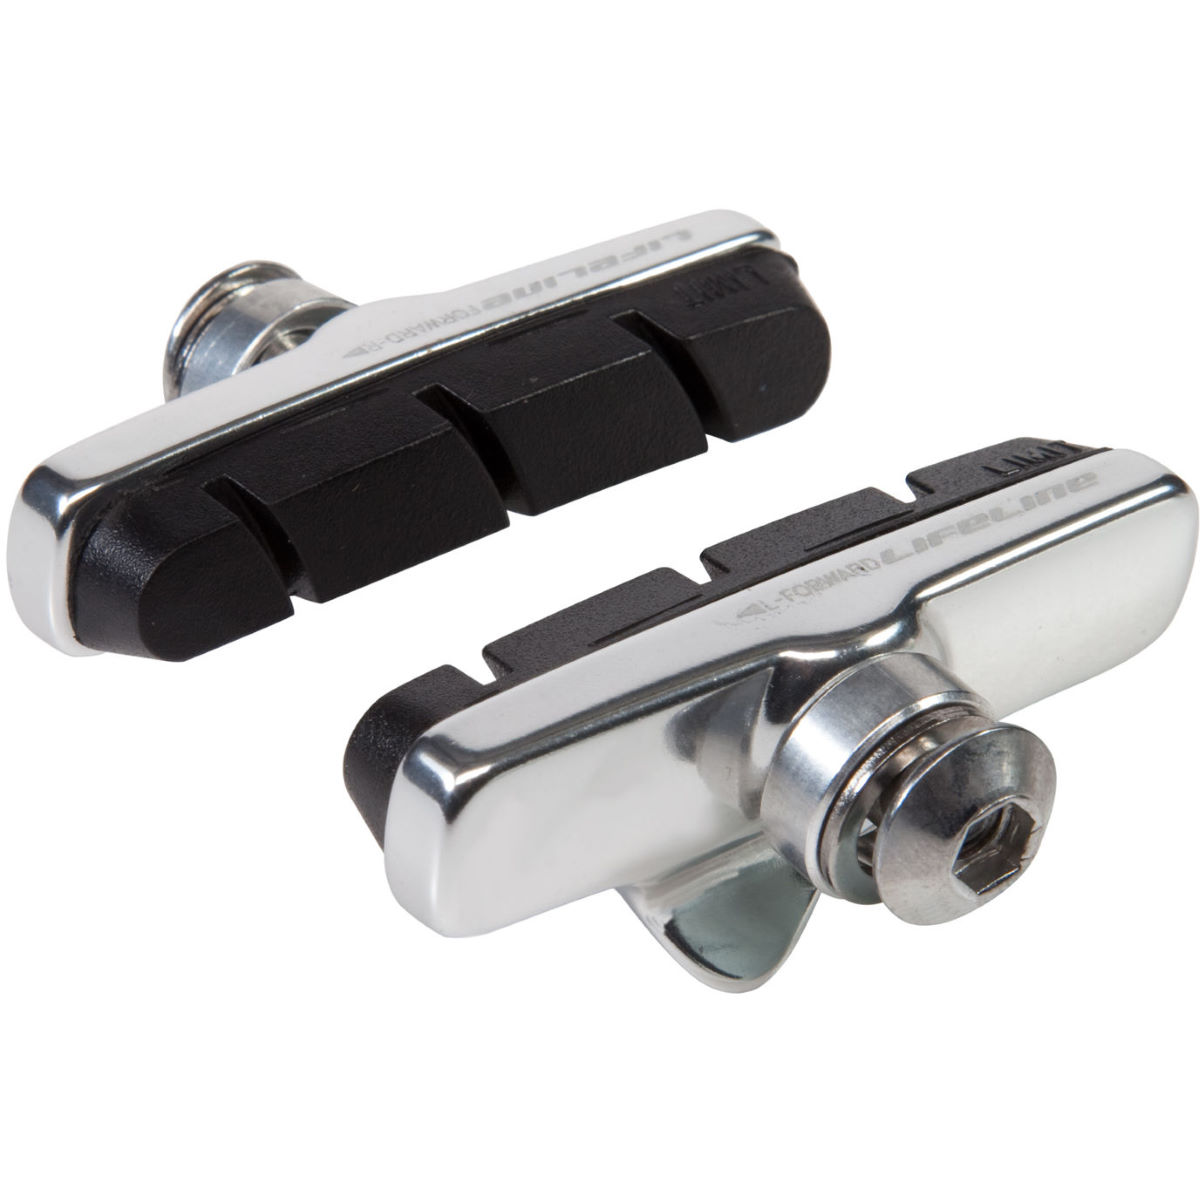 LifeLine Essential Road Brake Holders and Inserts - 4 Pack